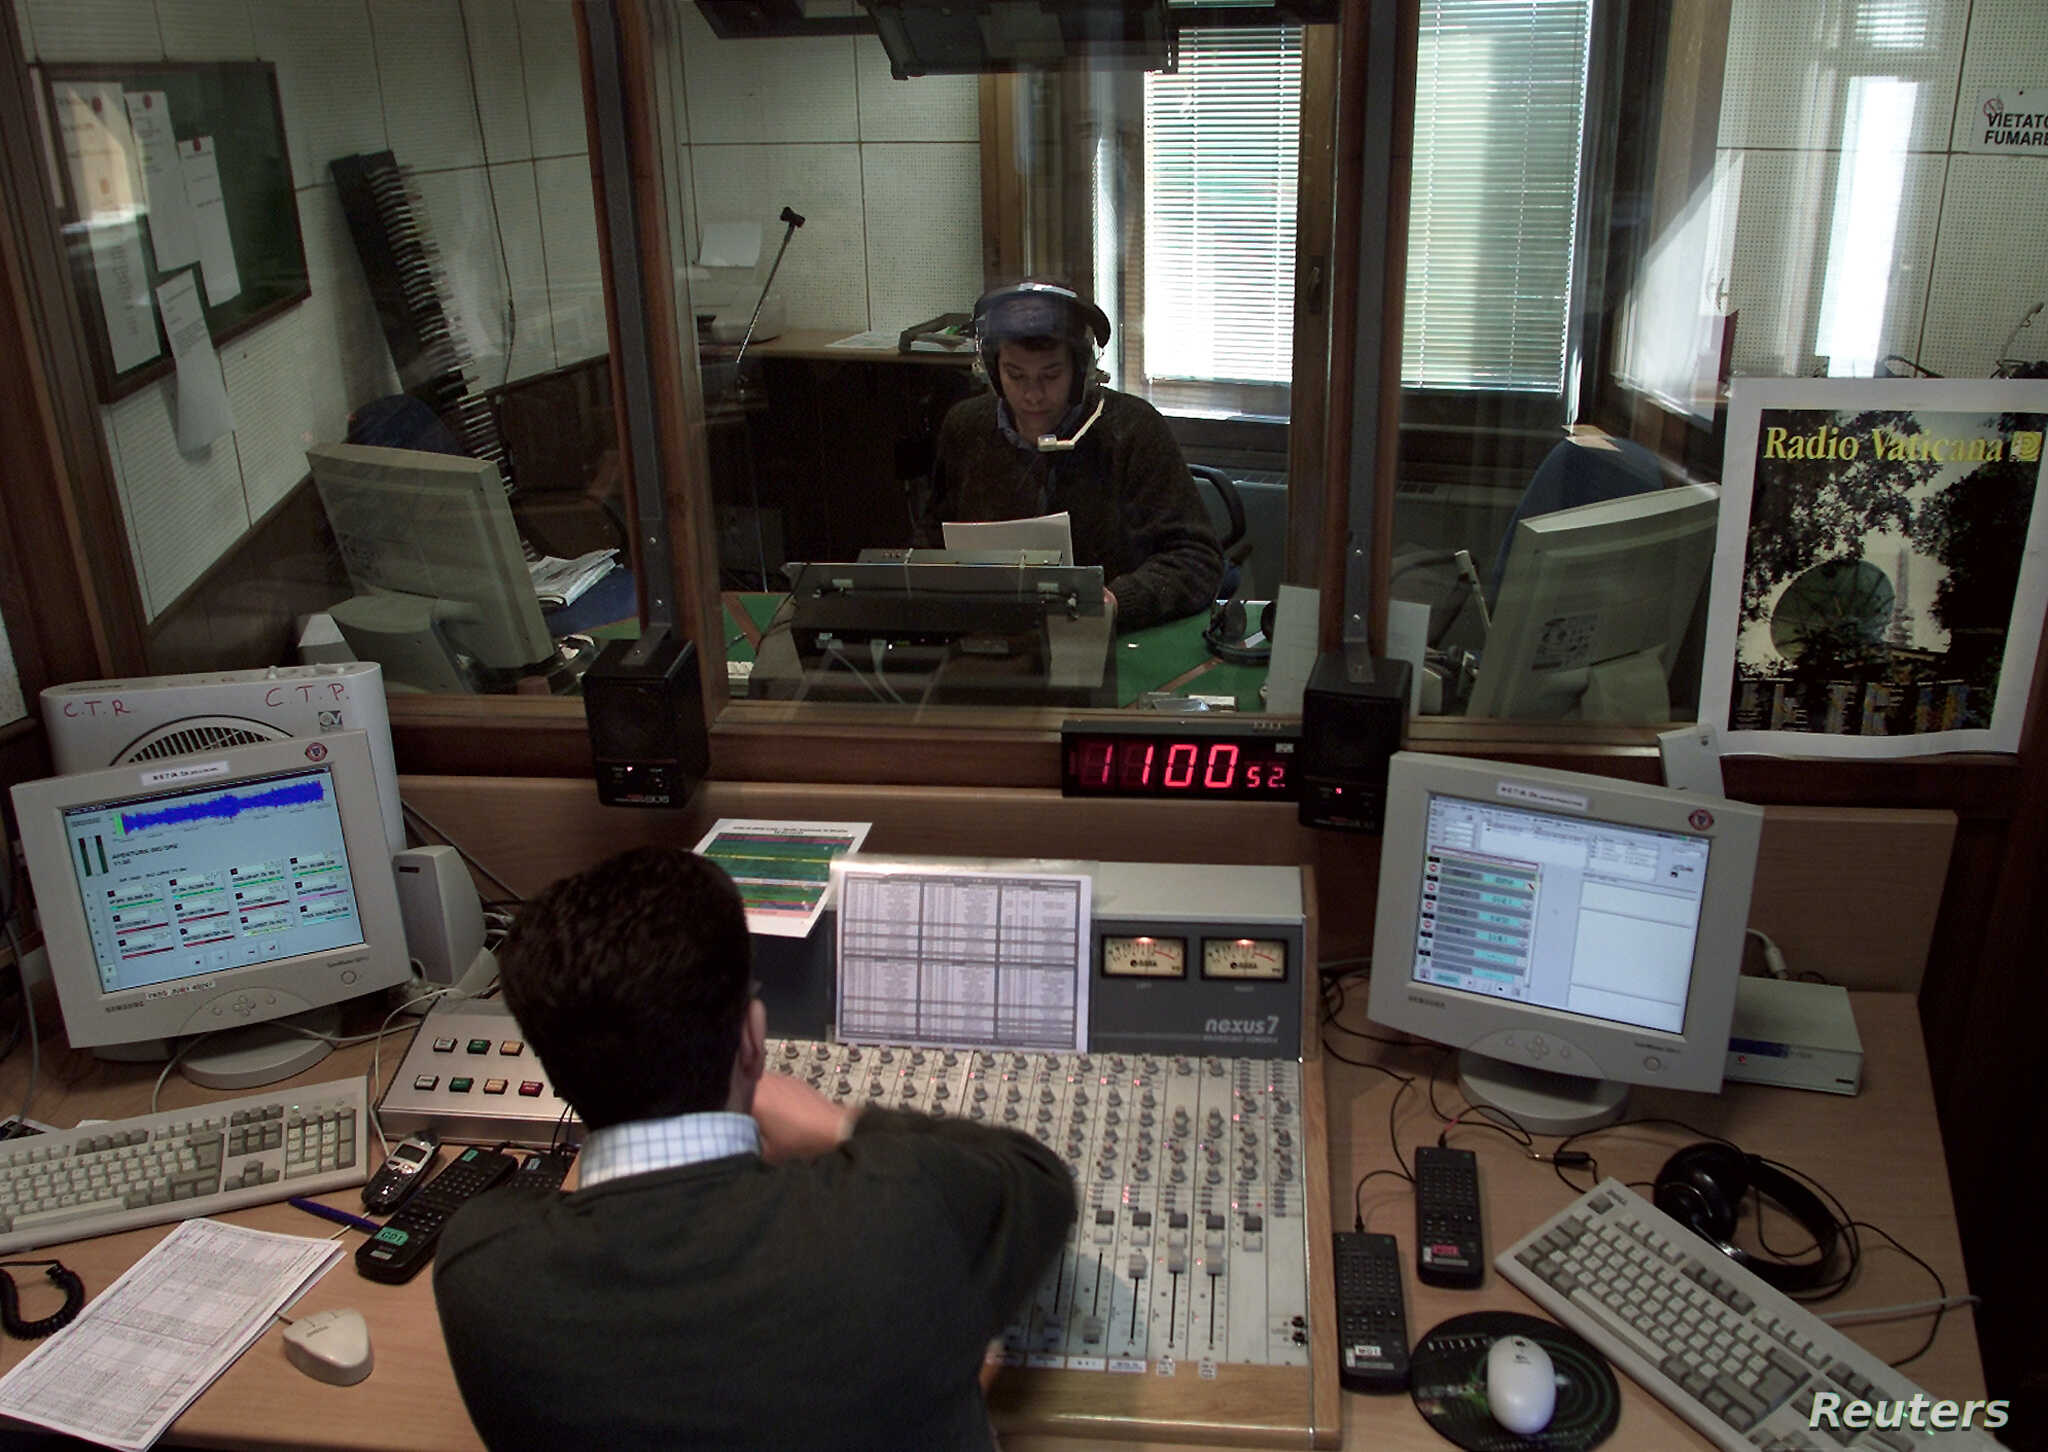 Latin Lovers Tune In: Vatican Broadcasts News in Language of